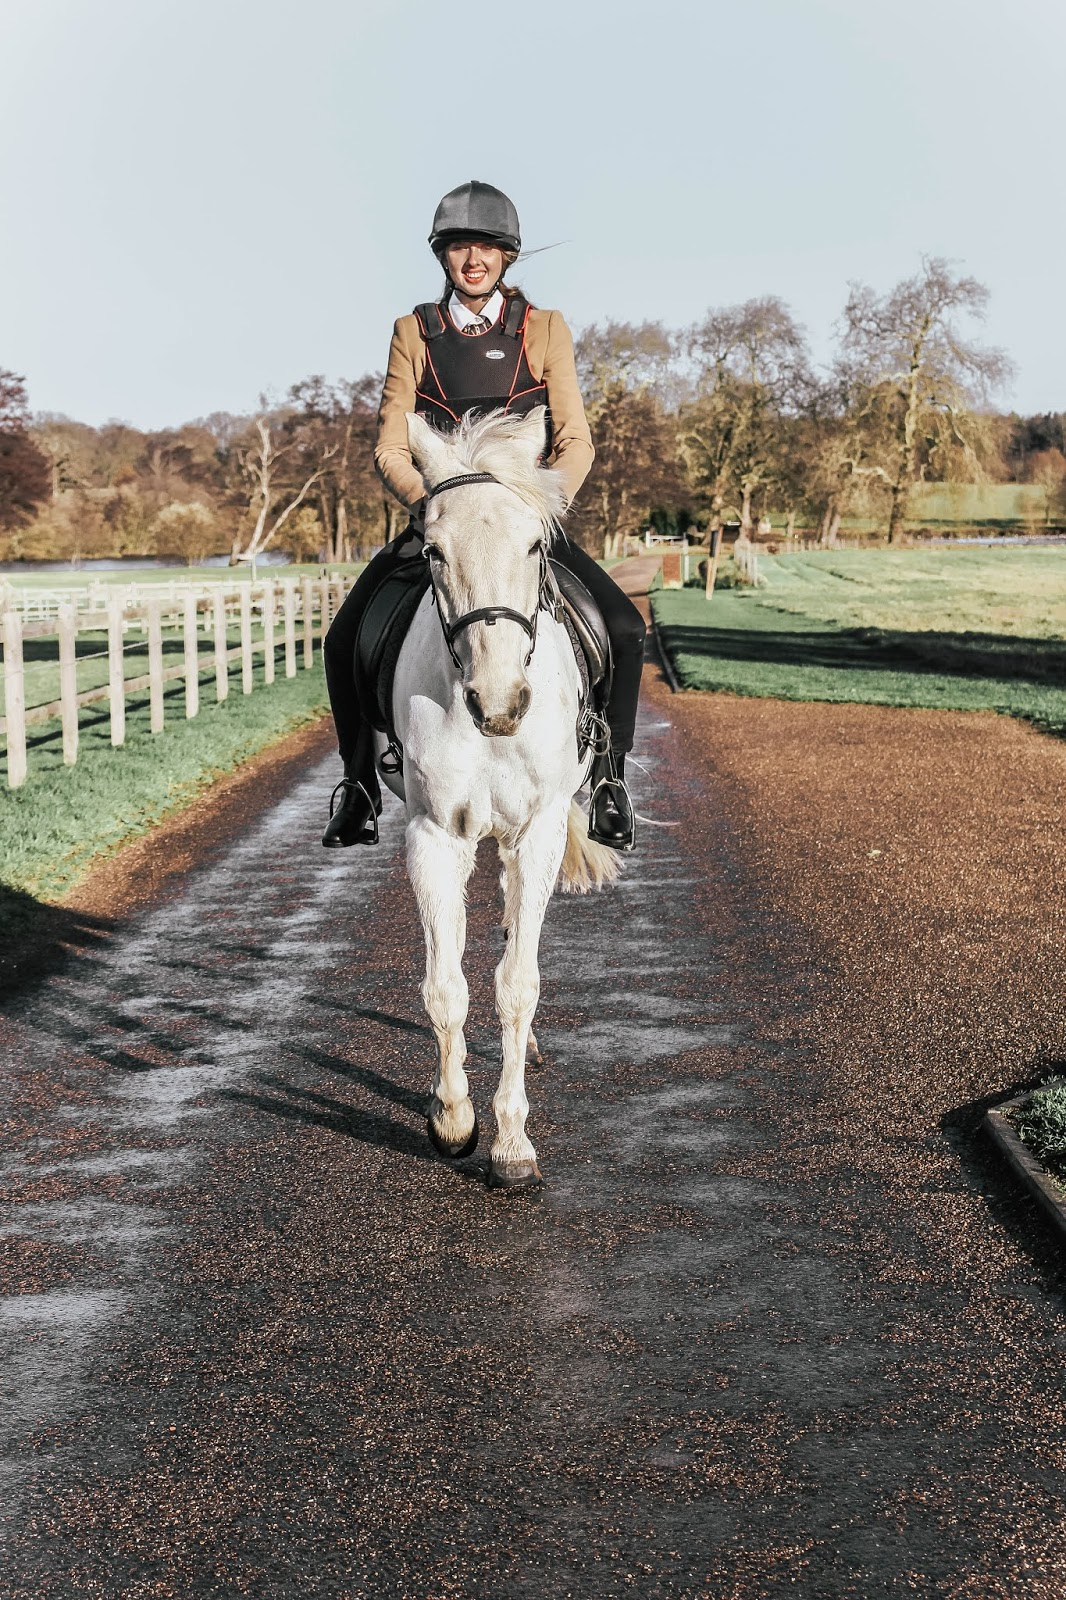 Four Seasons Hotel Hampshire Horse Riding Lessons